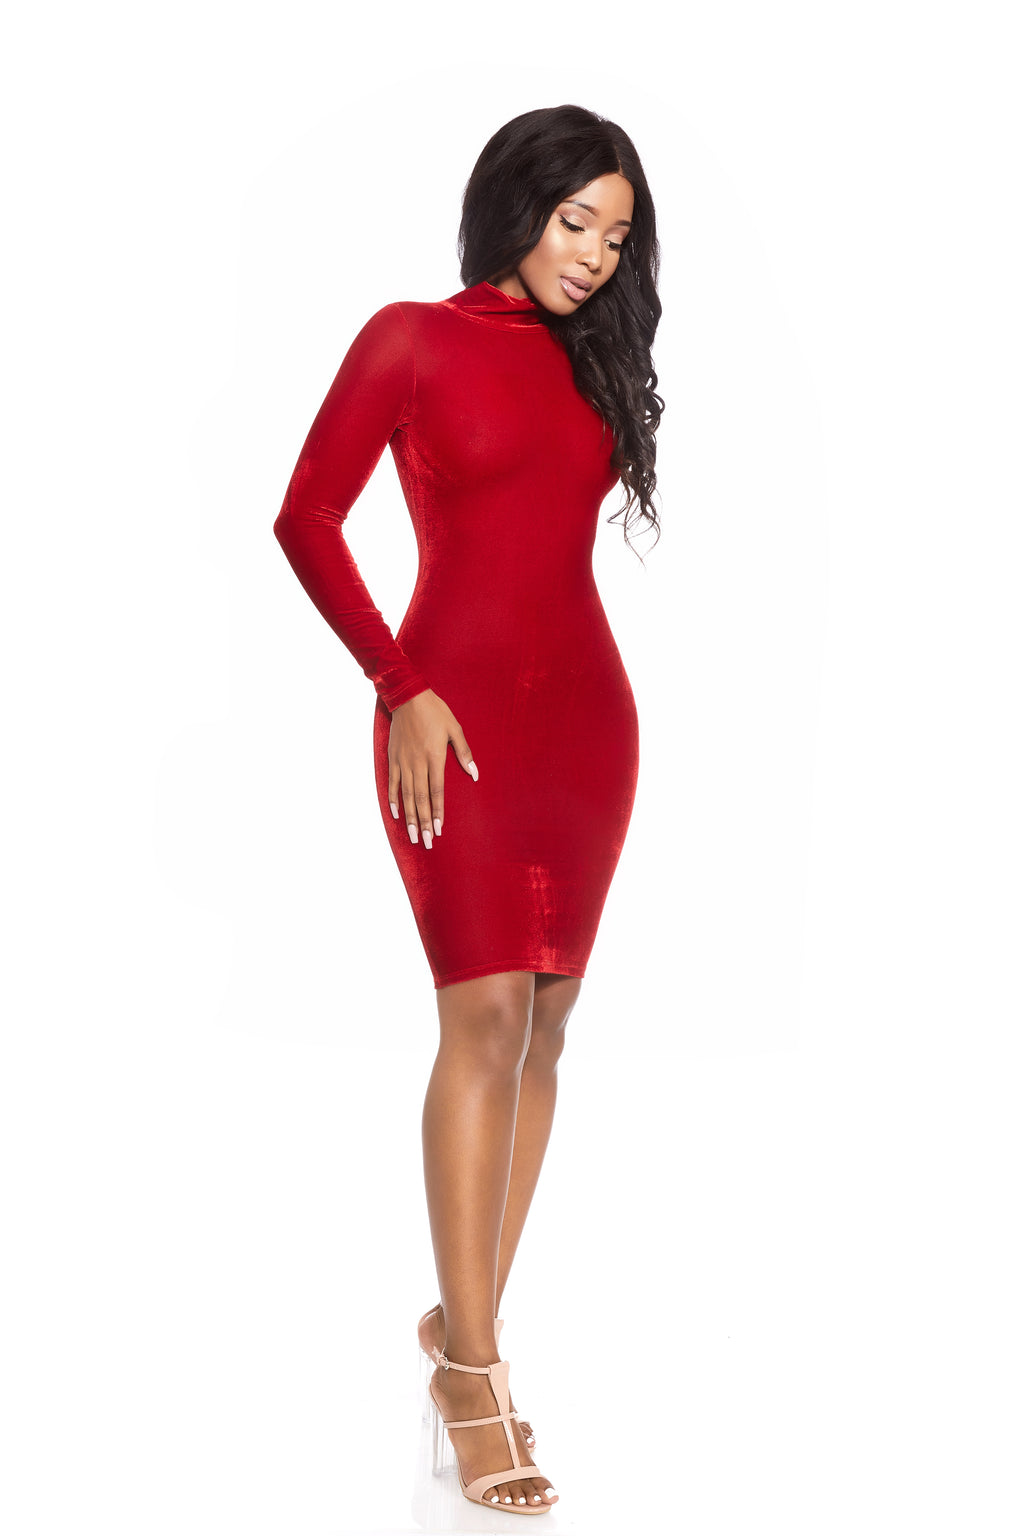 EMPORIA RUBY VELVET POLAR NECK DRESS